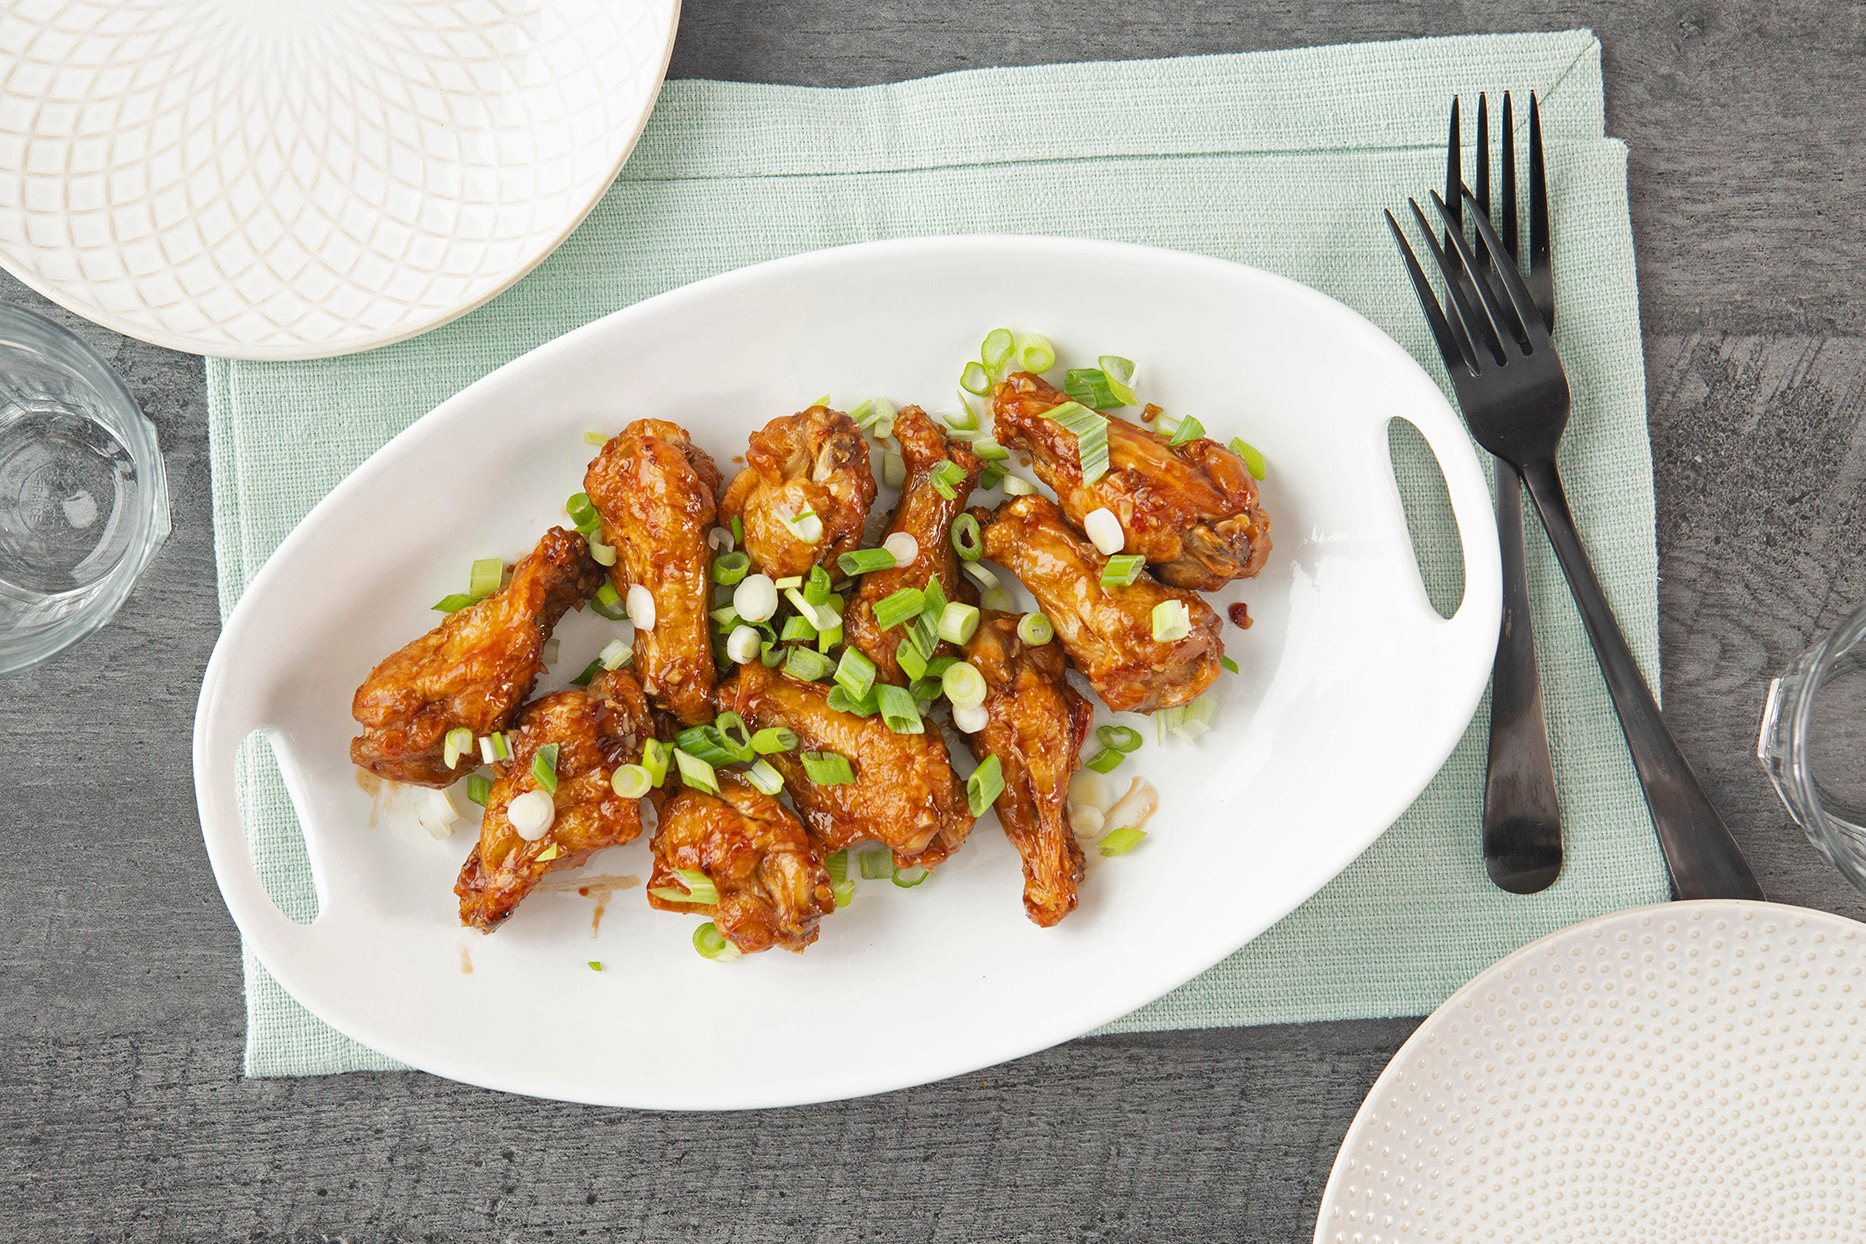 plate of chicken wings topped with green onions